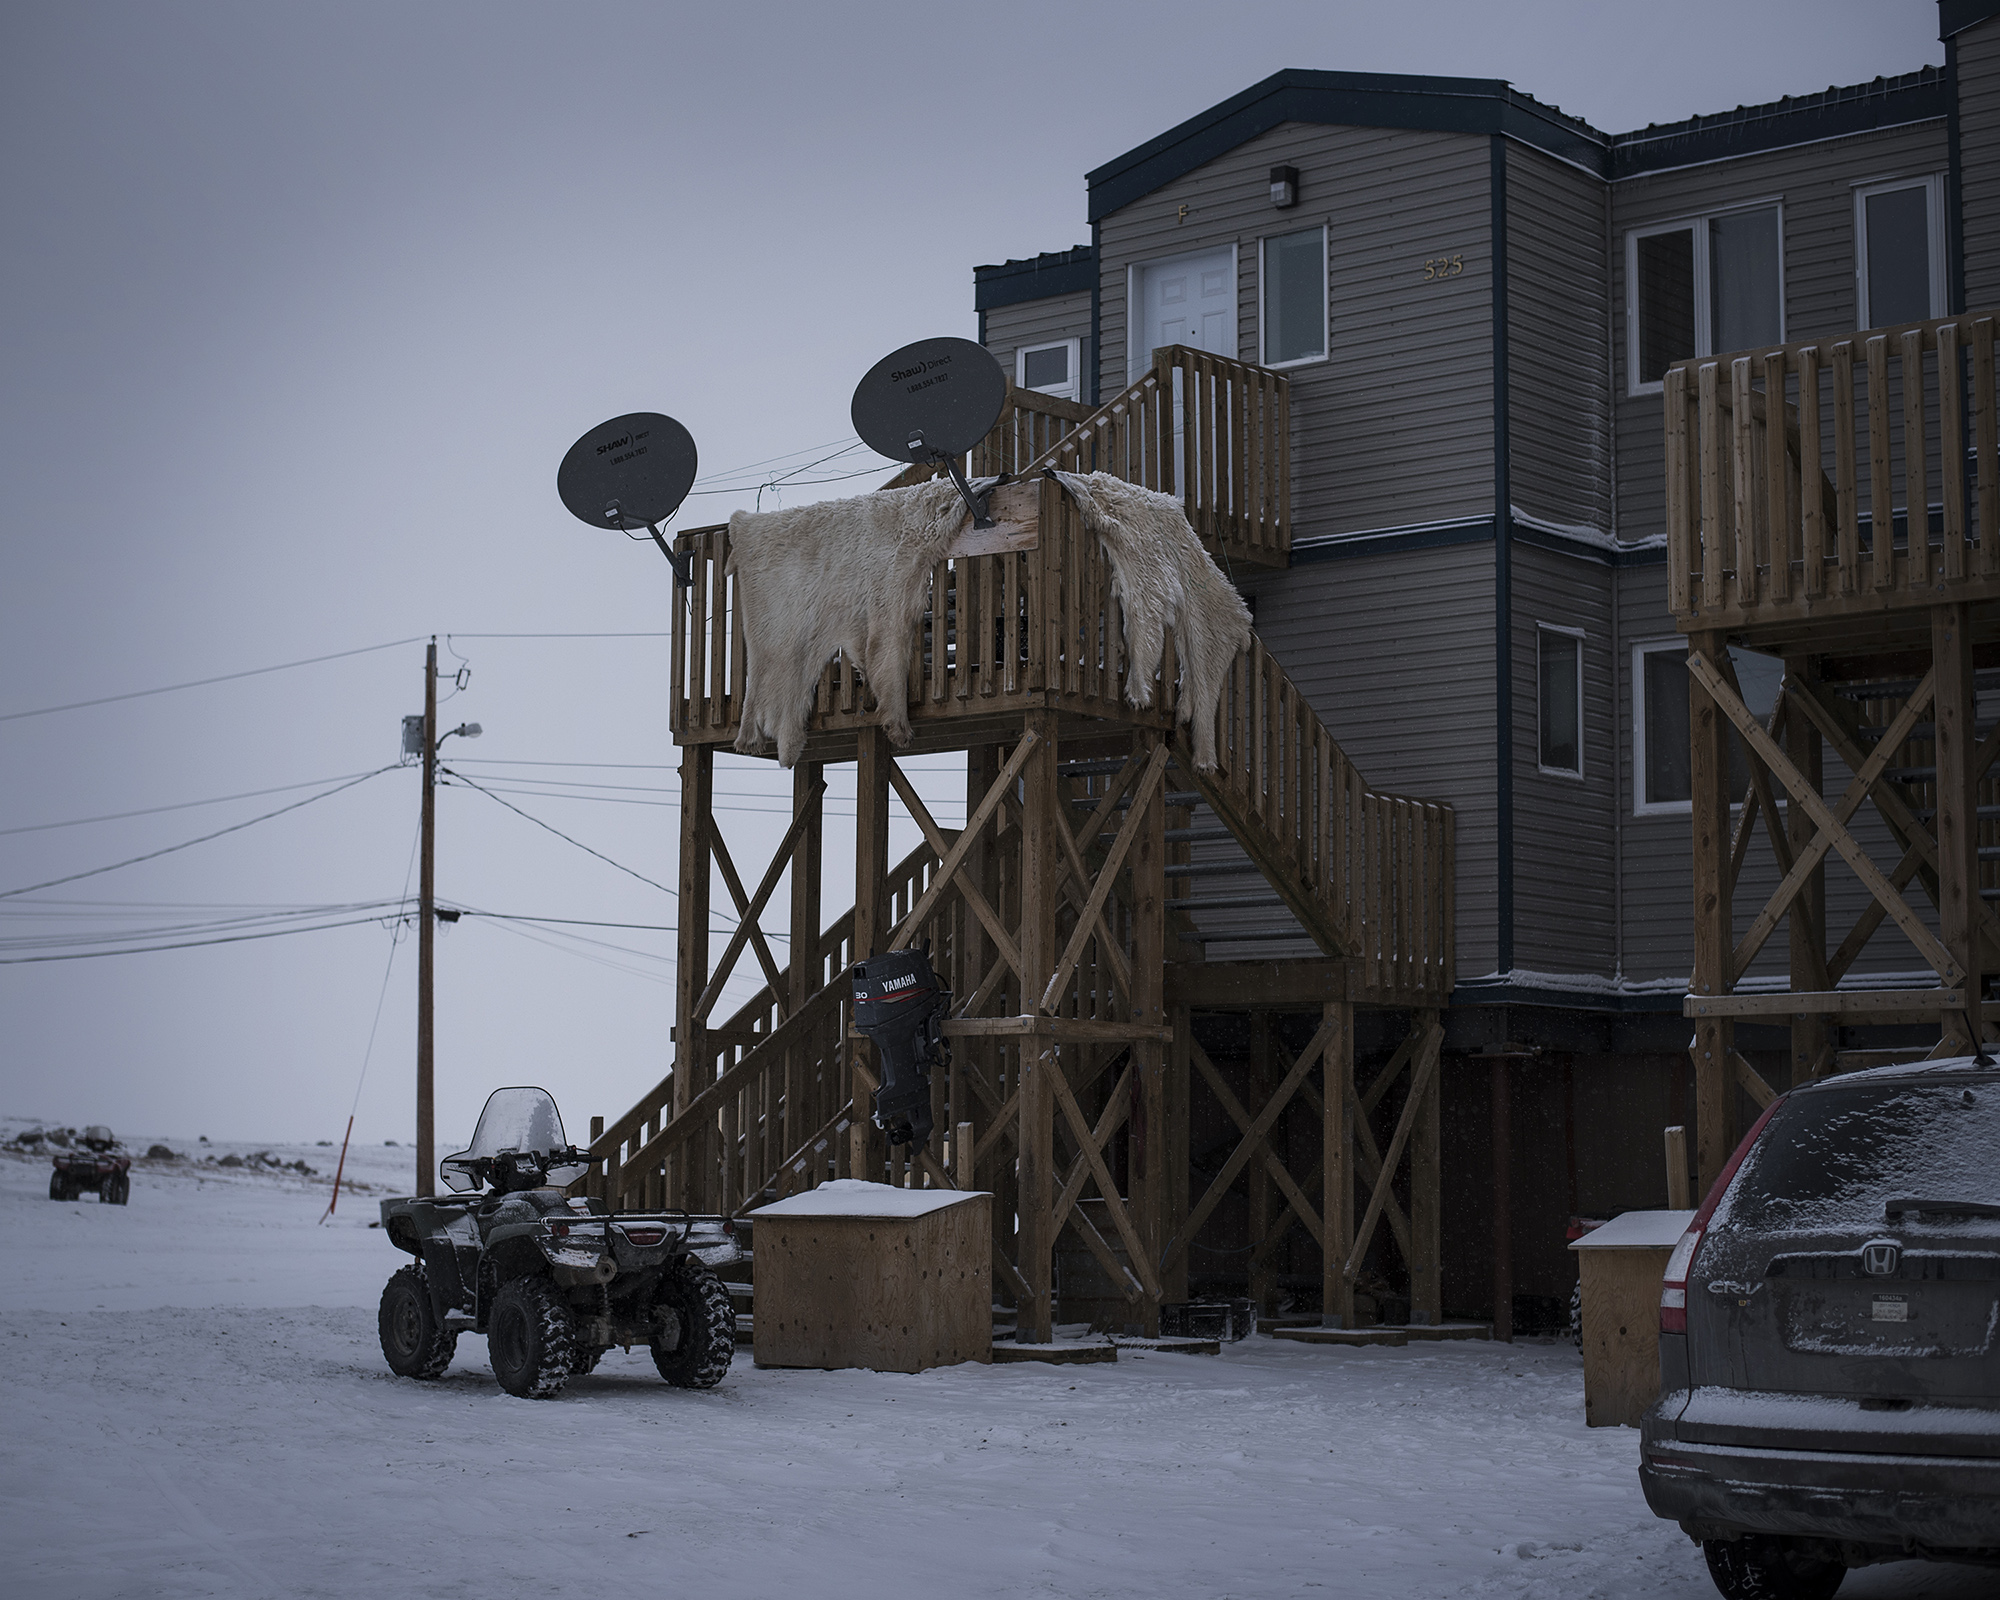 Most Inuit lived in permanent housing by the end of 1960s, while children were forced to boarding schools far from home through a campaign of forced assimilation. The result of the program: many Inuit still feel lost between two cultures, and struggle with finding their place in modern society. (Camilla Andersen/GroundTruth)